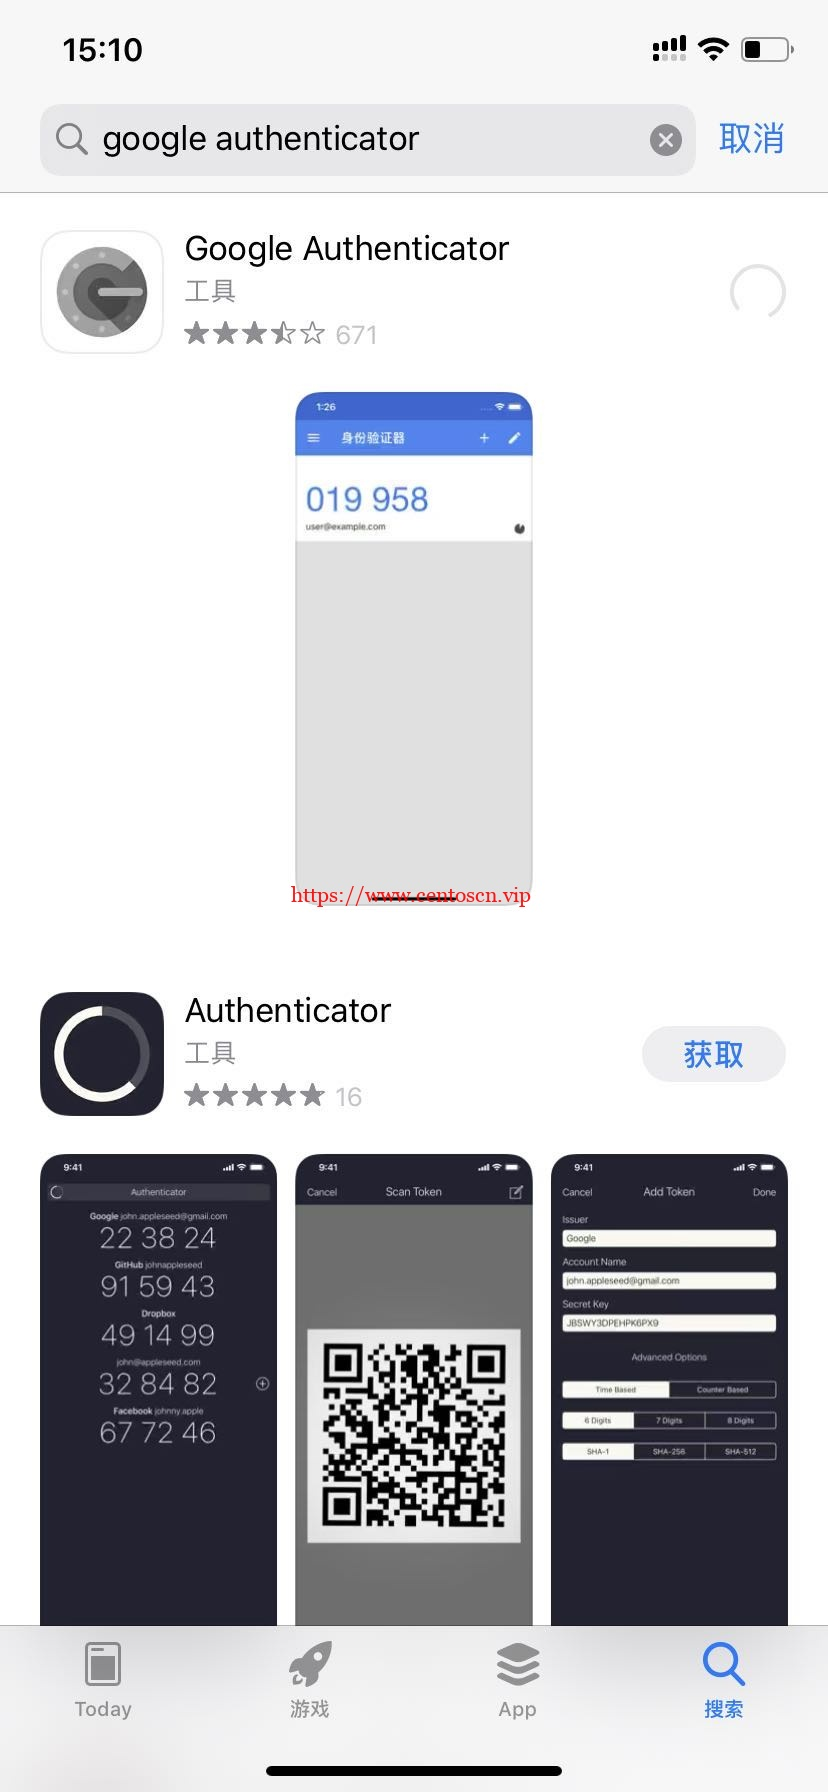 CentOS7使用Google Authenticator